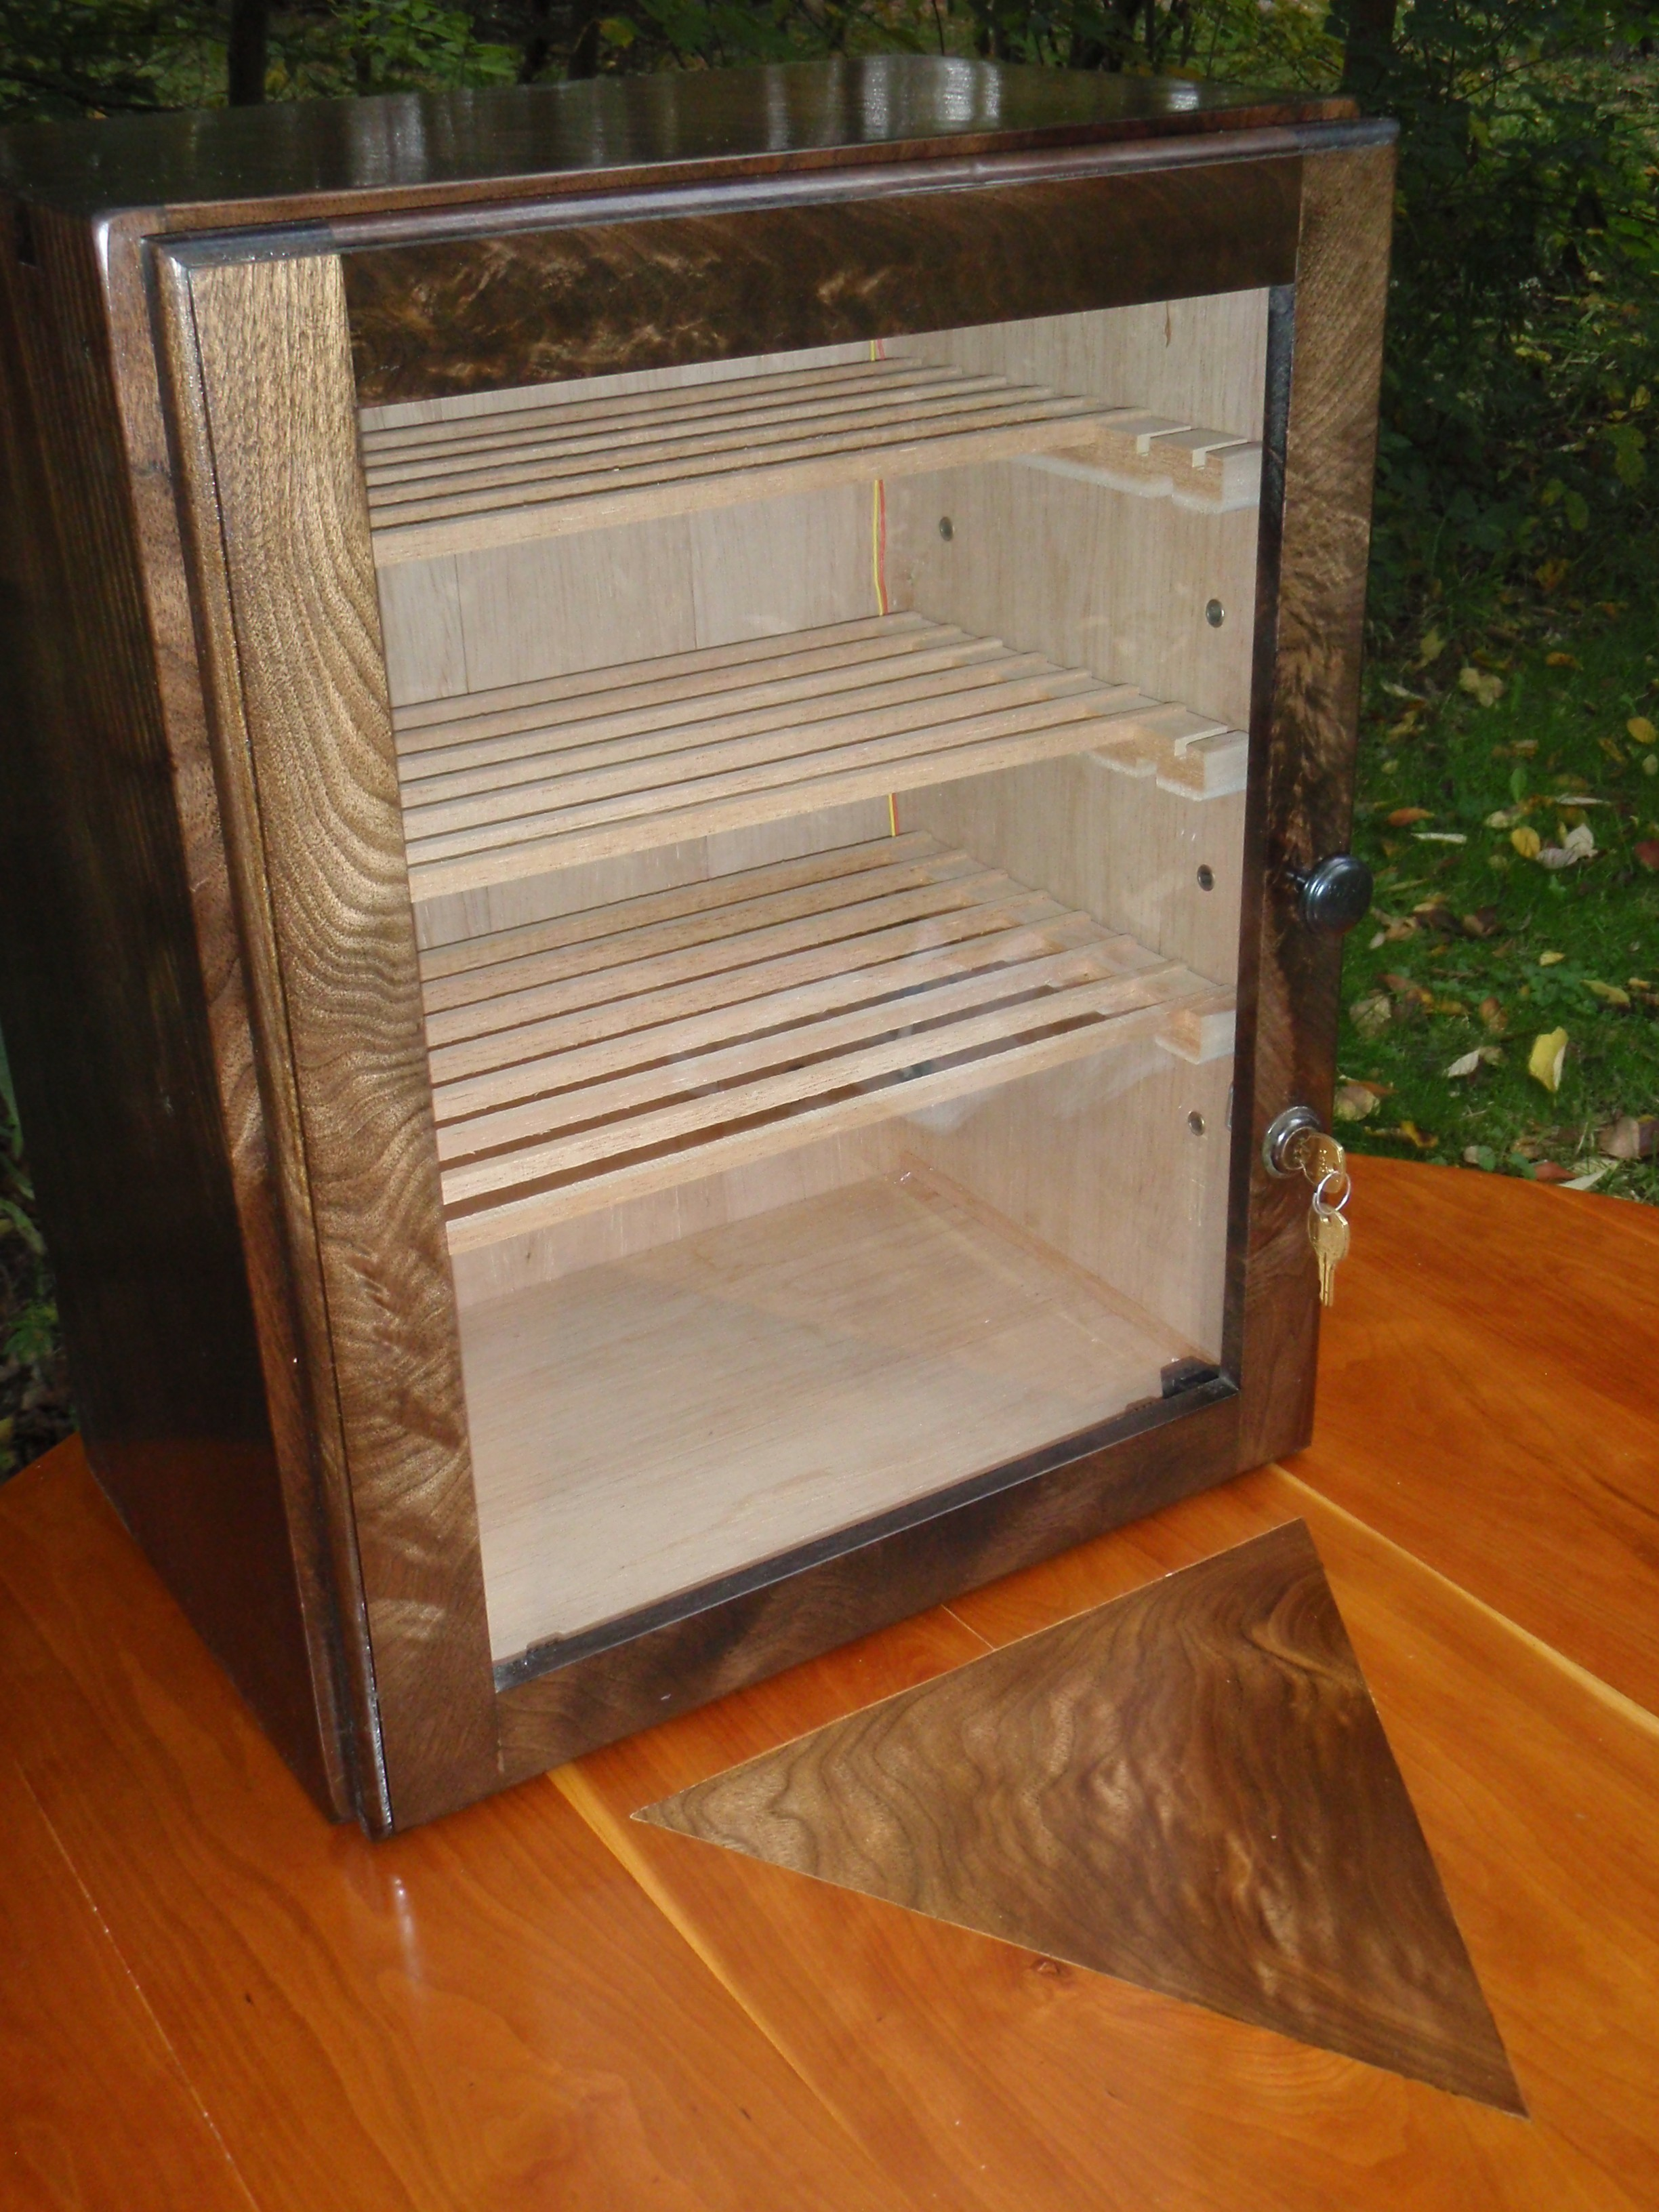 Unique Wine Humidor From Wooden Material : Four Levels Humidor With Key And Panel Wooden Wine Humidor Design